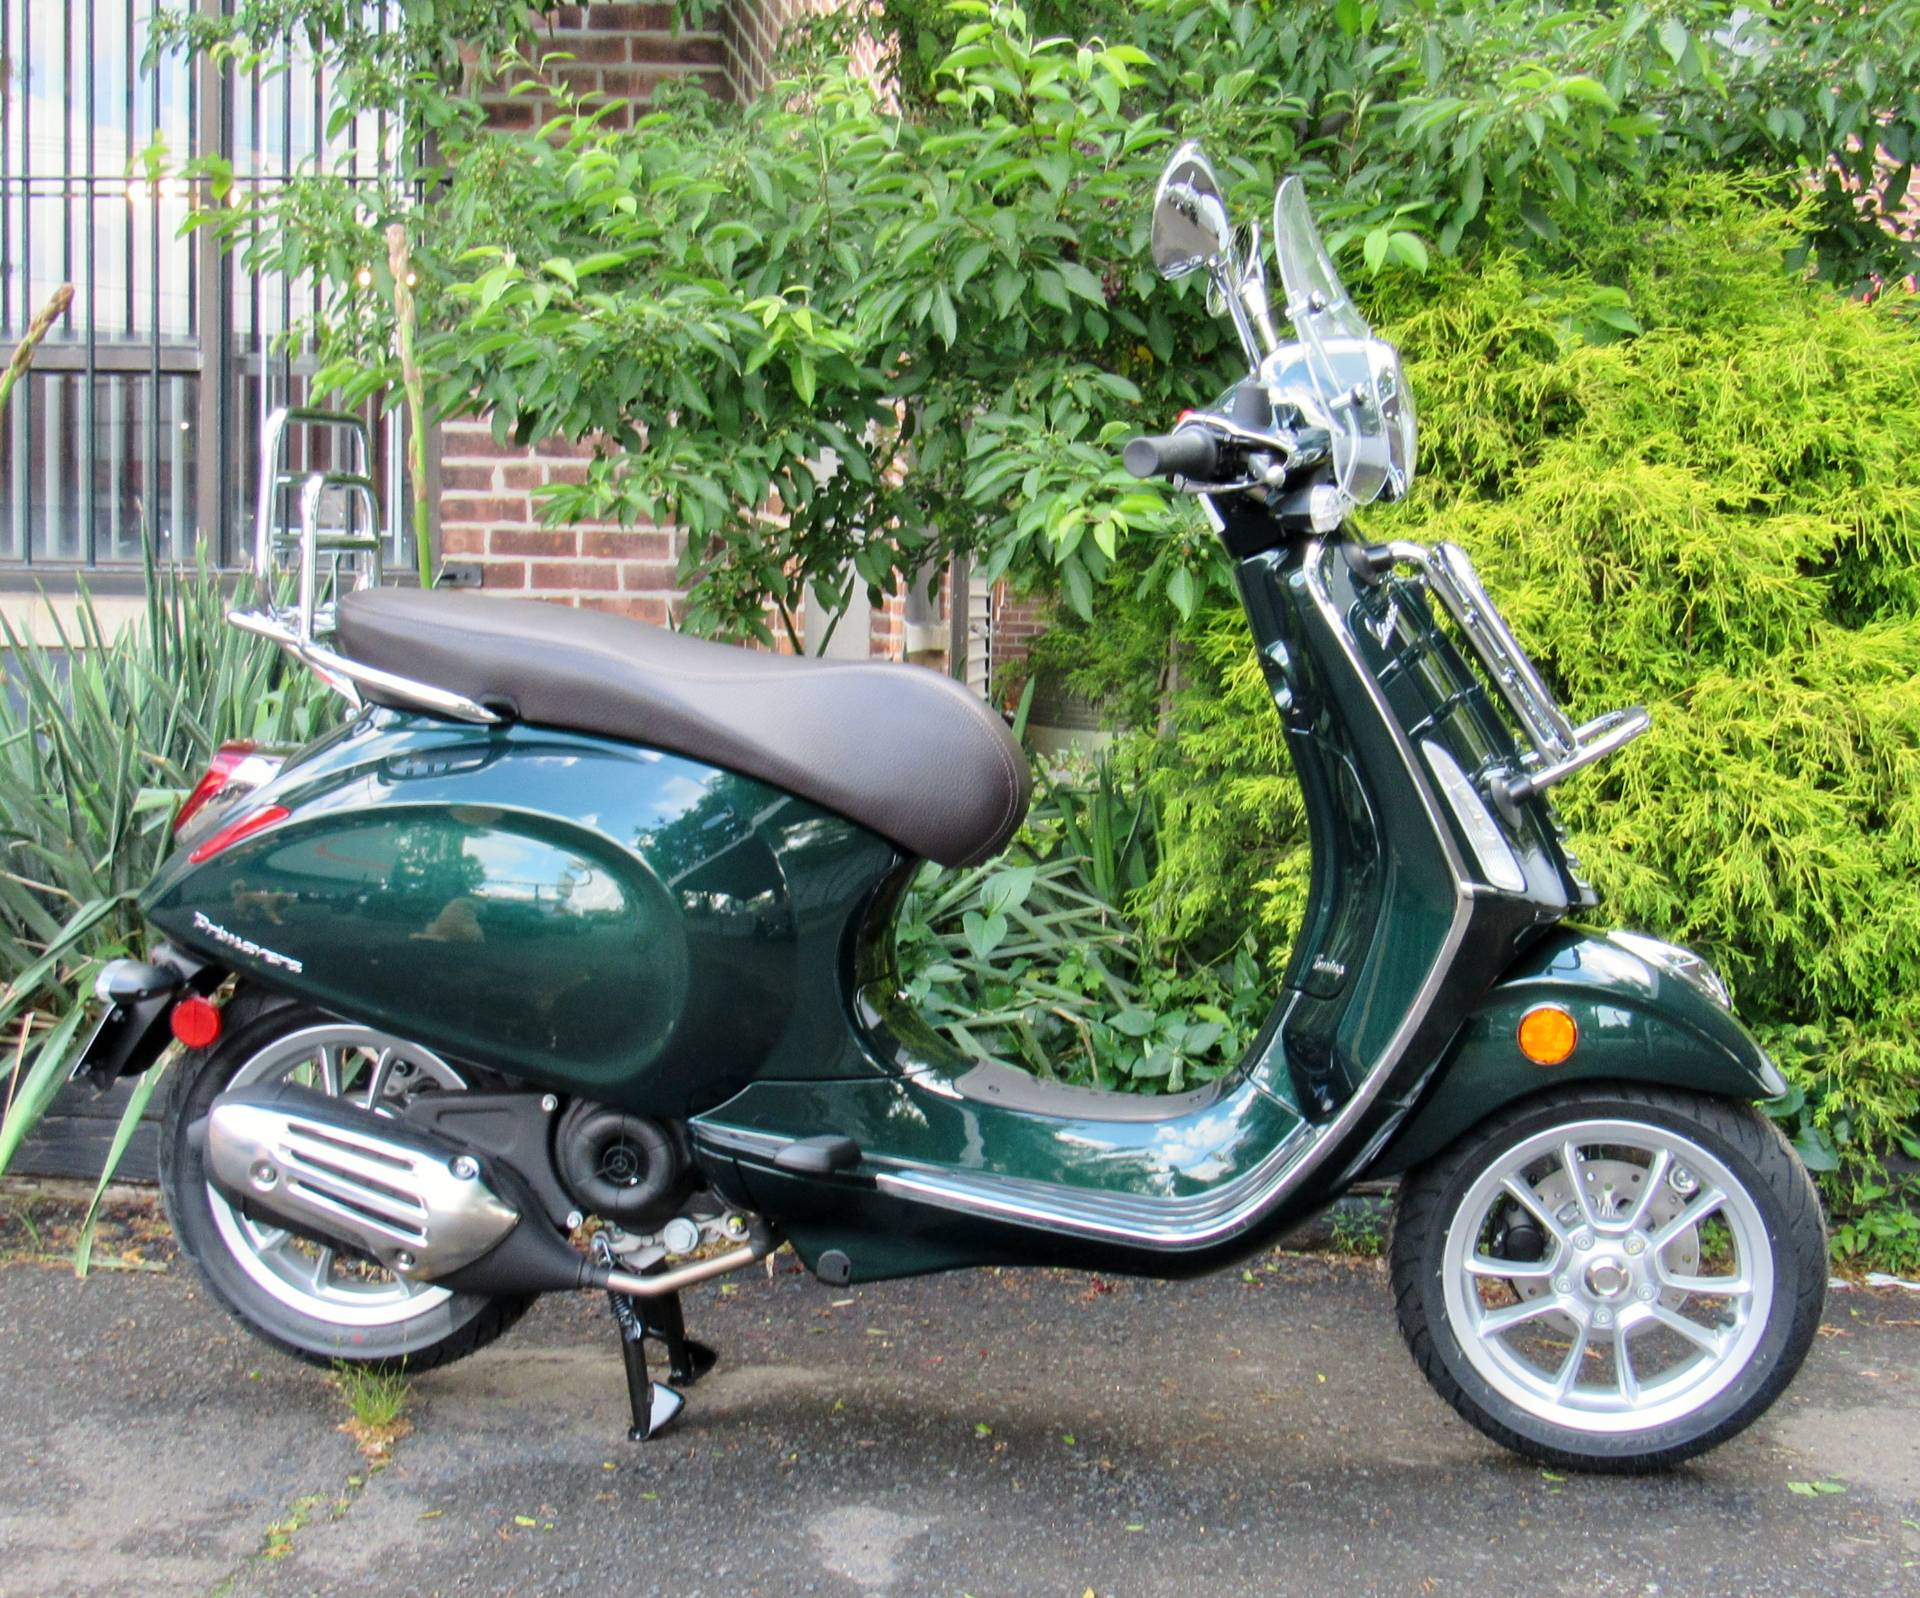 2020 Vespa Primavera Touring 50 in New Haven, Connecticut - Photo 1